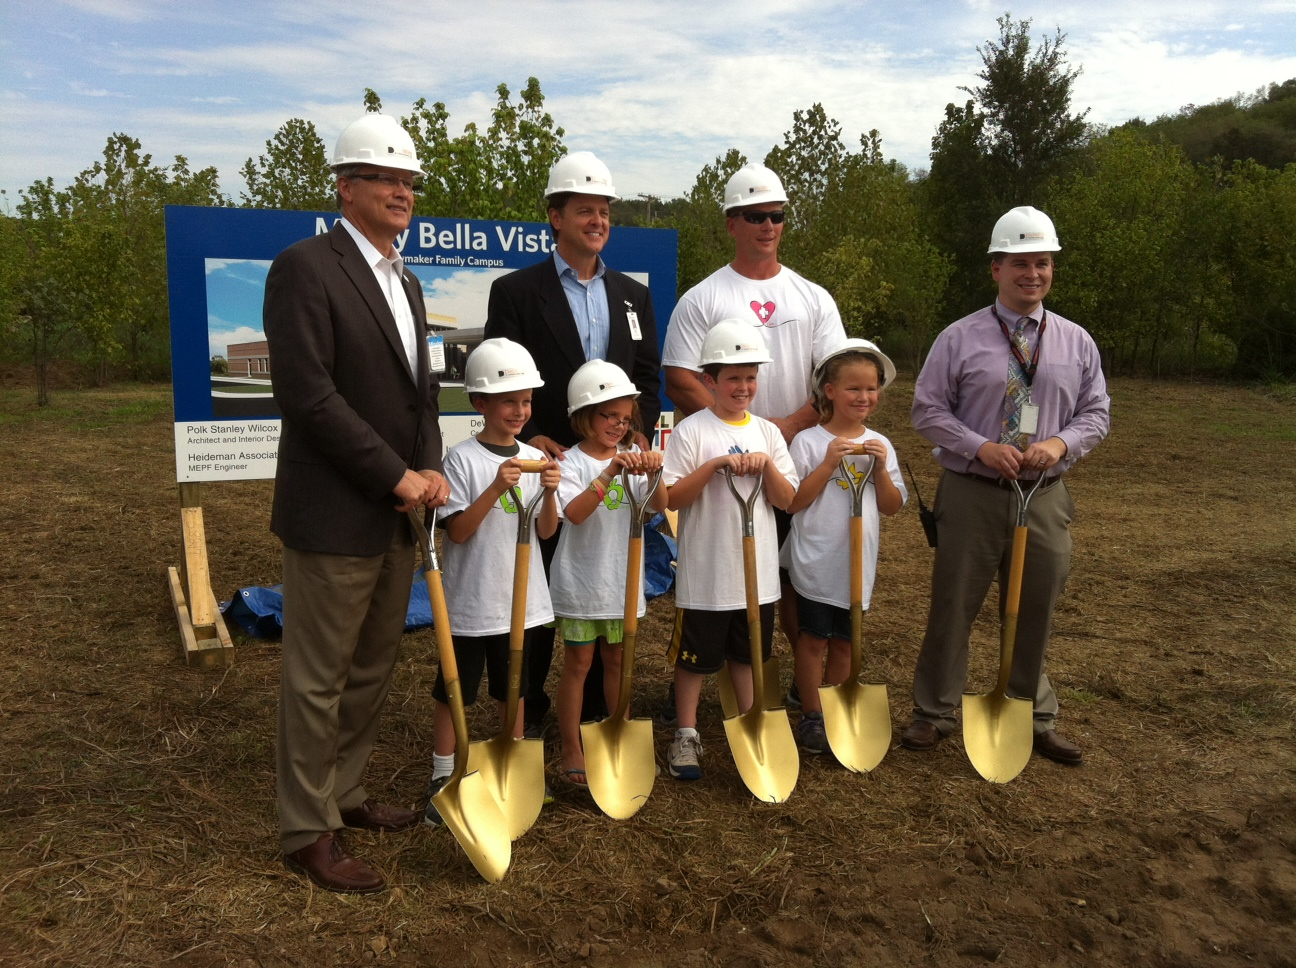 Cooper Elementary students at Mercy Bella Vista groundbreaking, photo courtesy Martine Pollard